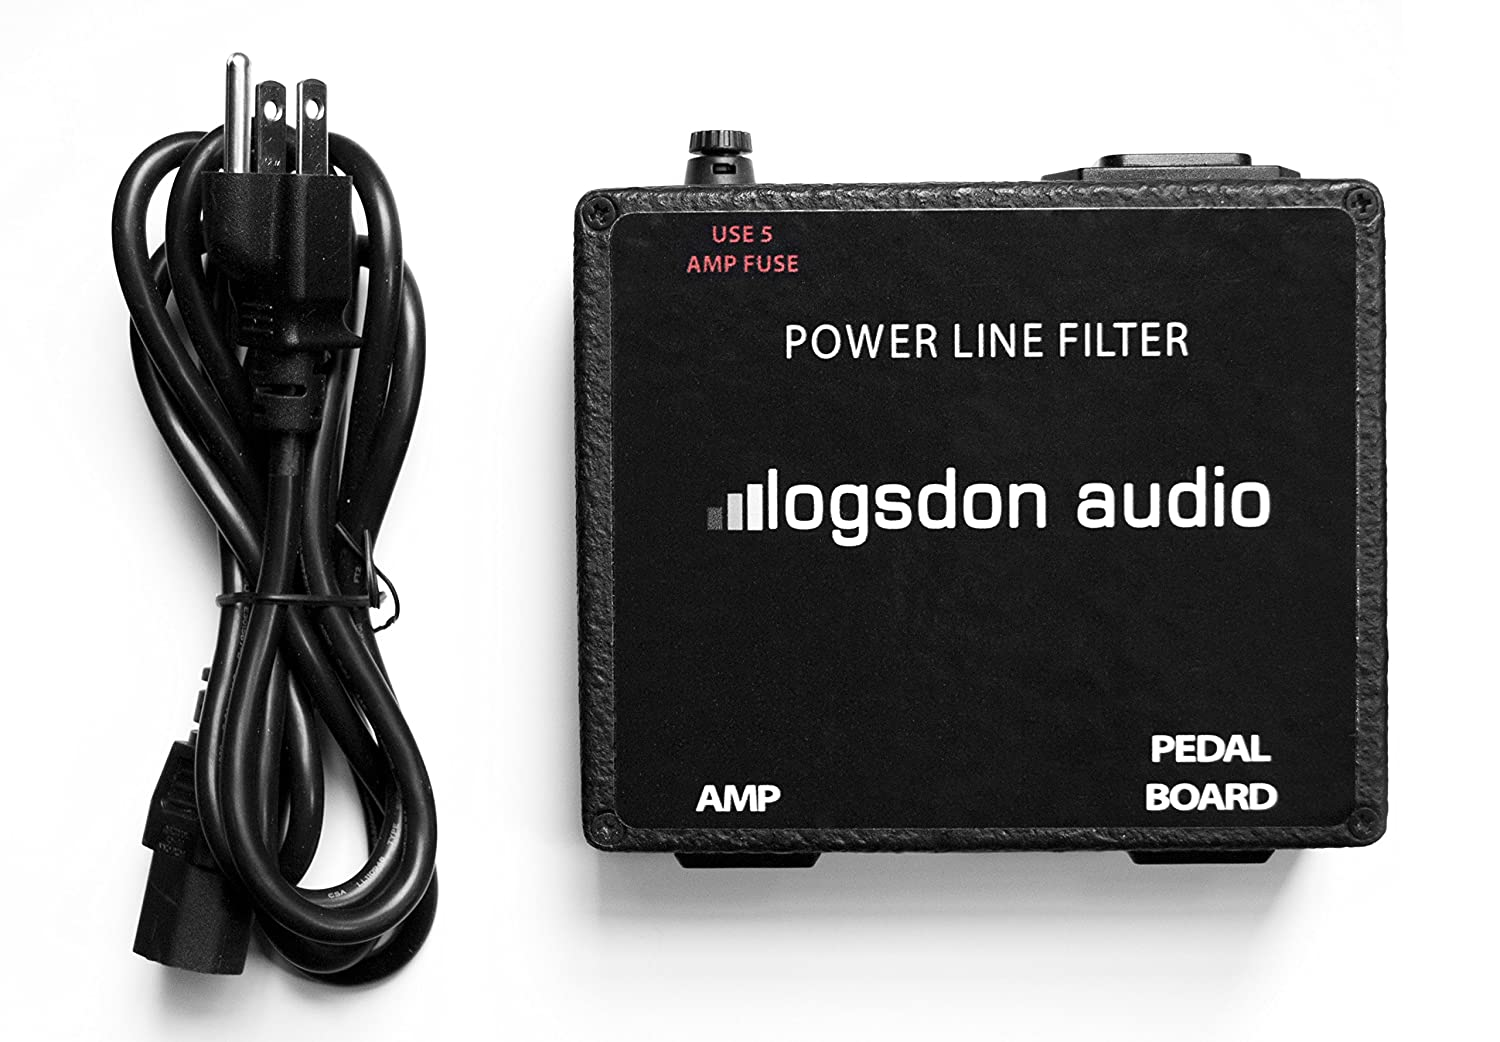 Power Line Filter Conditioner For Guitar Amps Collection Of Circuit Boards Used Source Audio Pedals And Pedal Musical Instruments